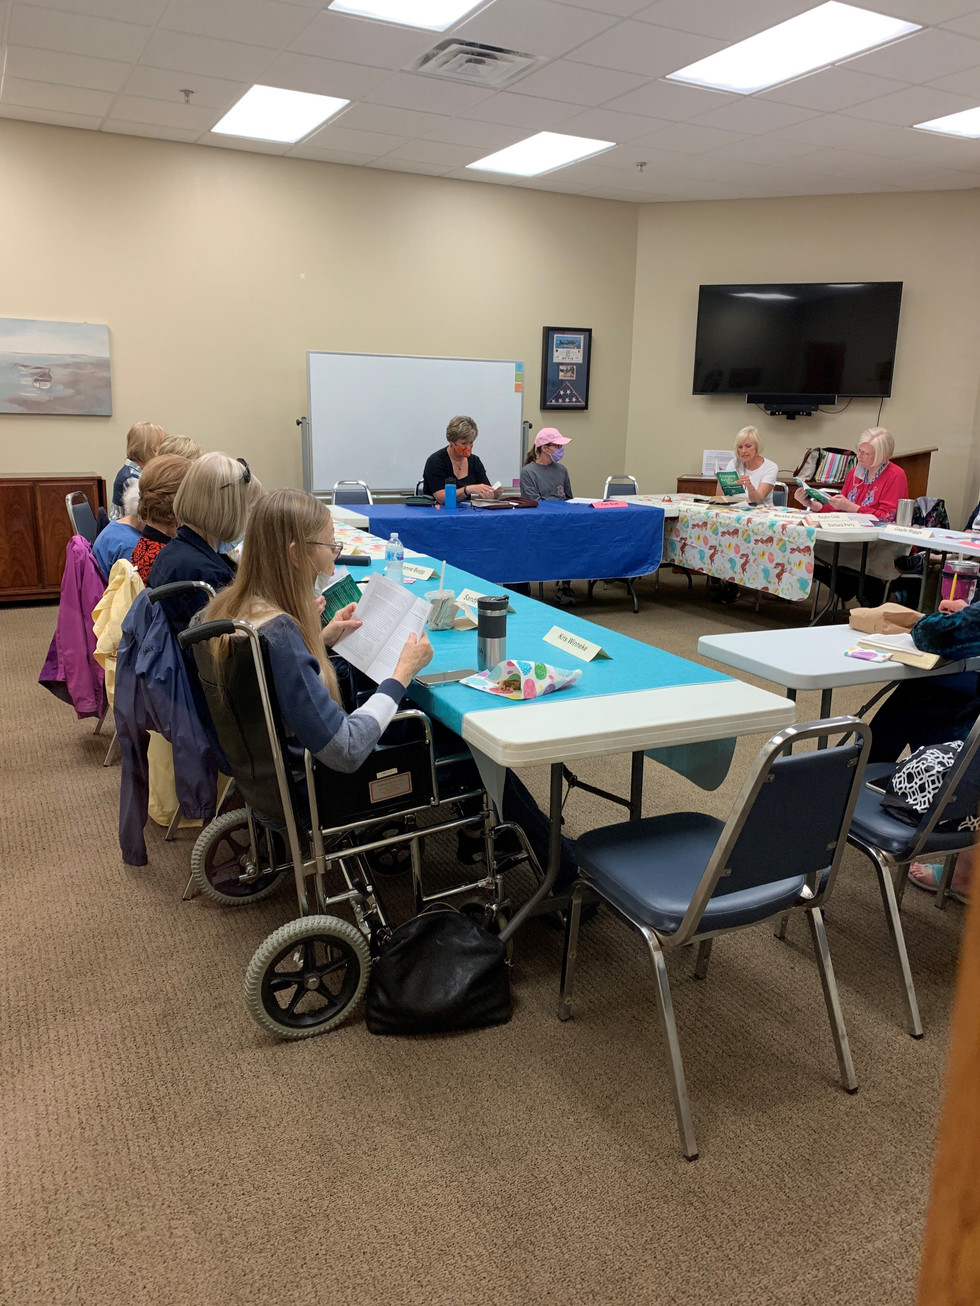 The Wednesday morning Women's Bible Study is meeting too.